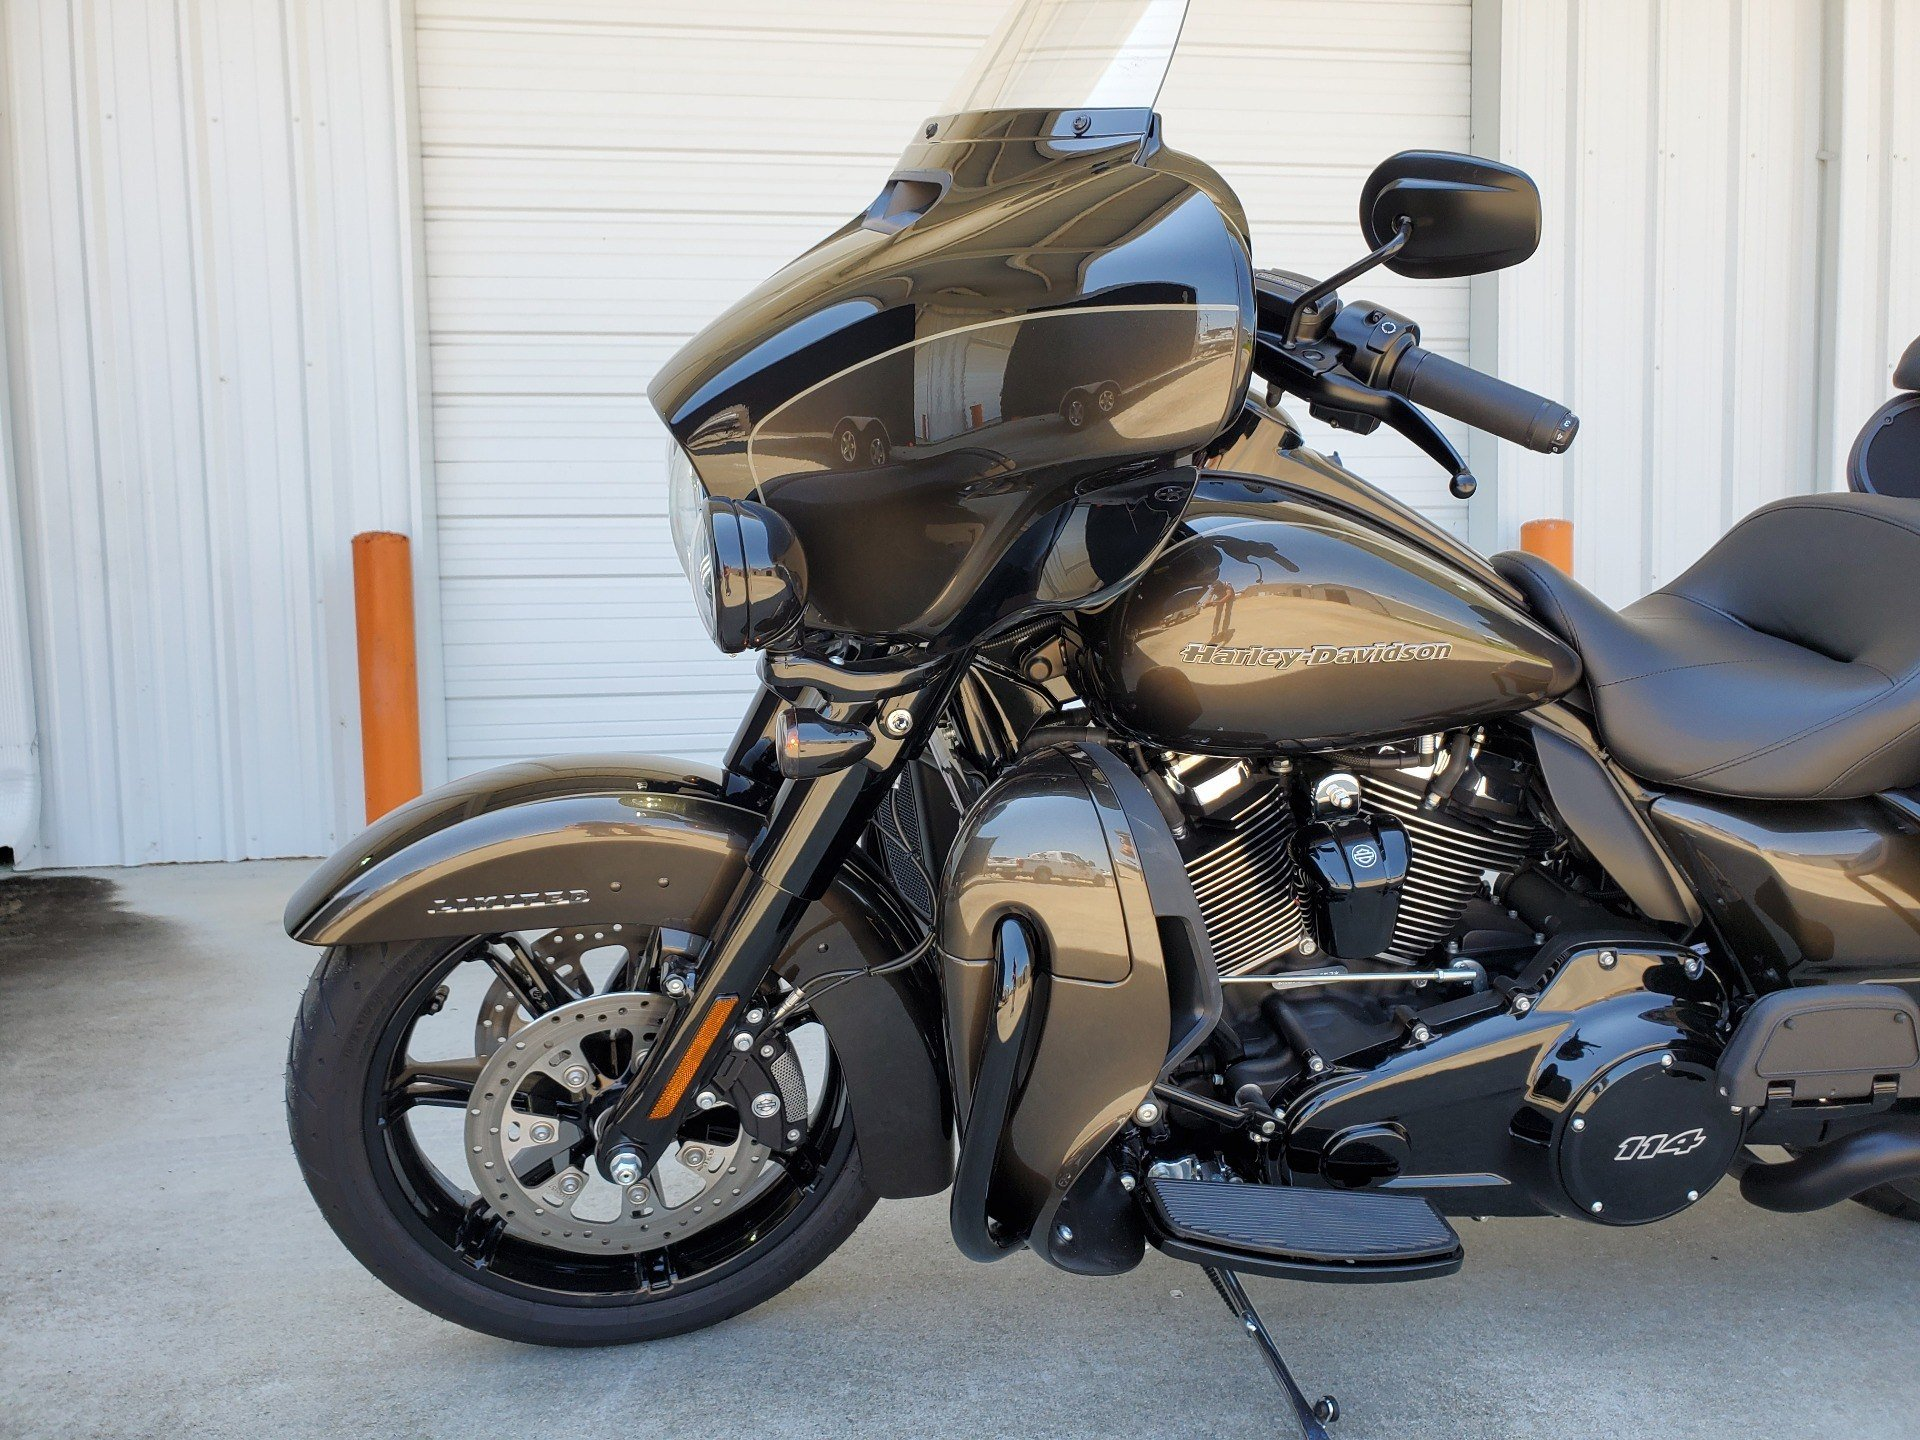 2020 Harley-Davidson Ultra Limited in Monroe, Louisiana - Photo 6